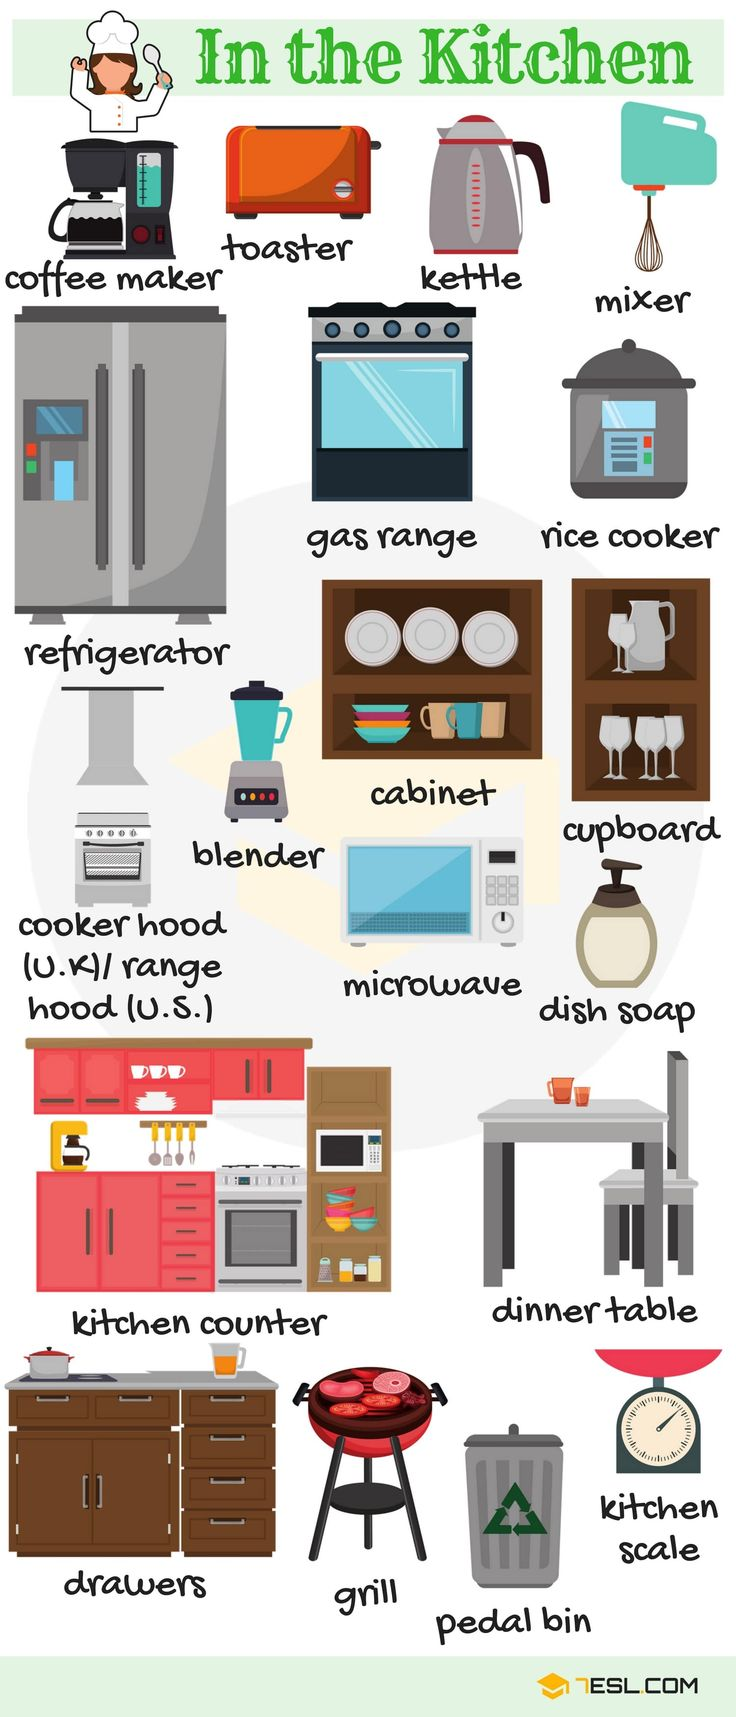 Kitchen Objects Vocabulary in English | In the Kitchen